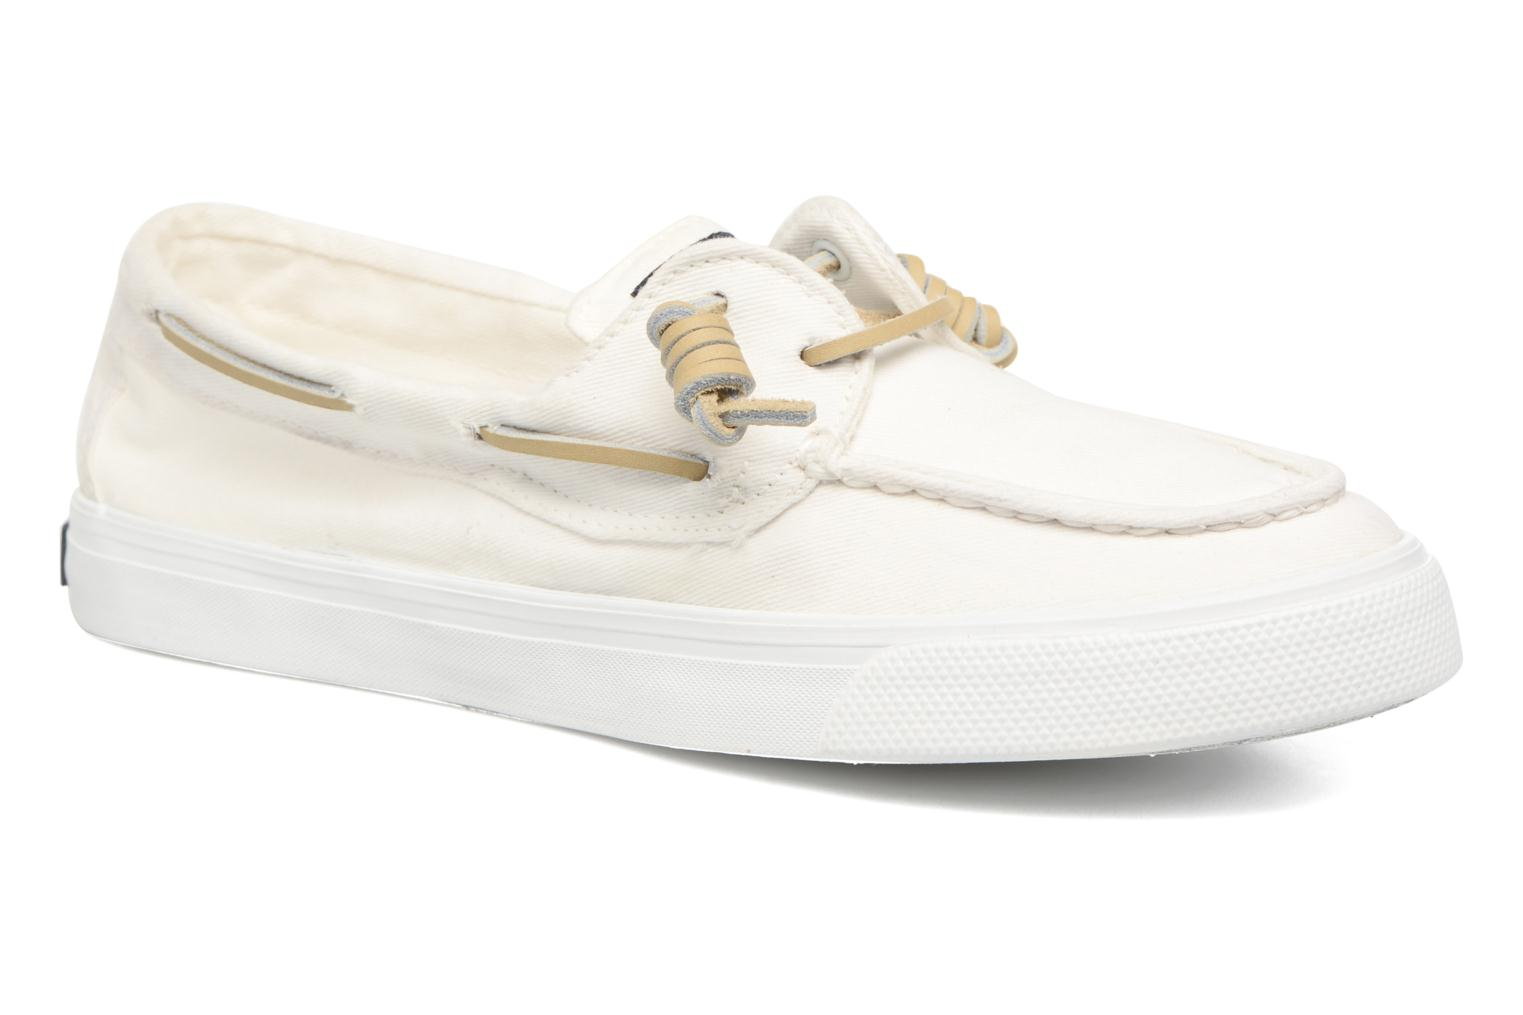 Bahama Washed by SperryRebajas - 20%